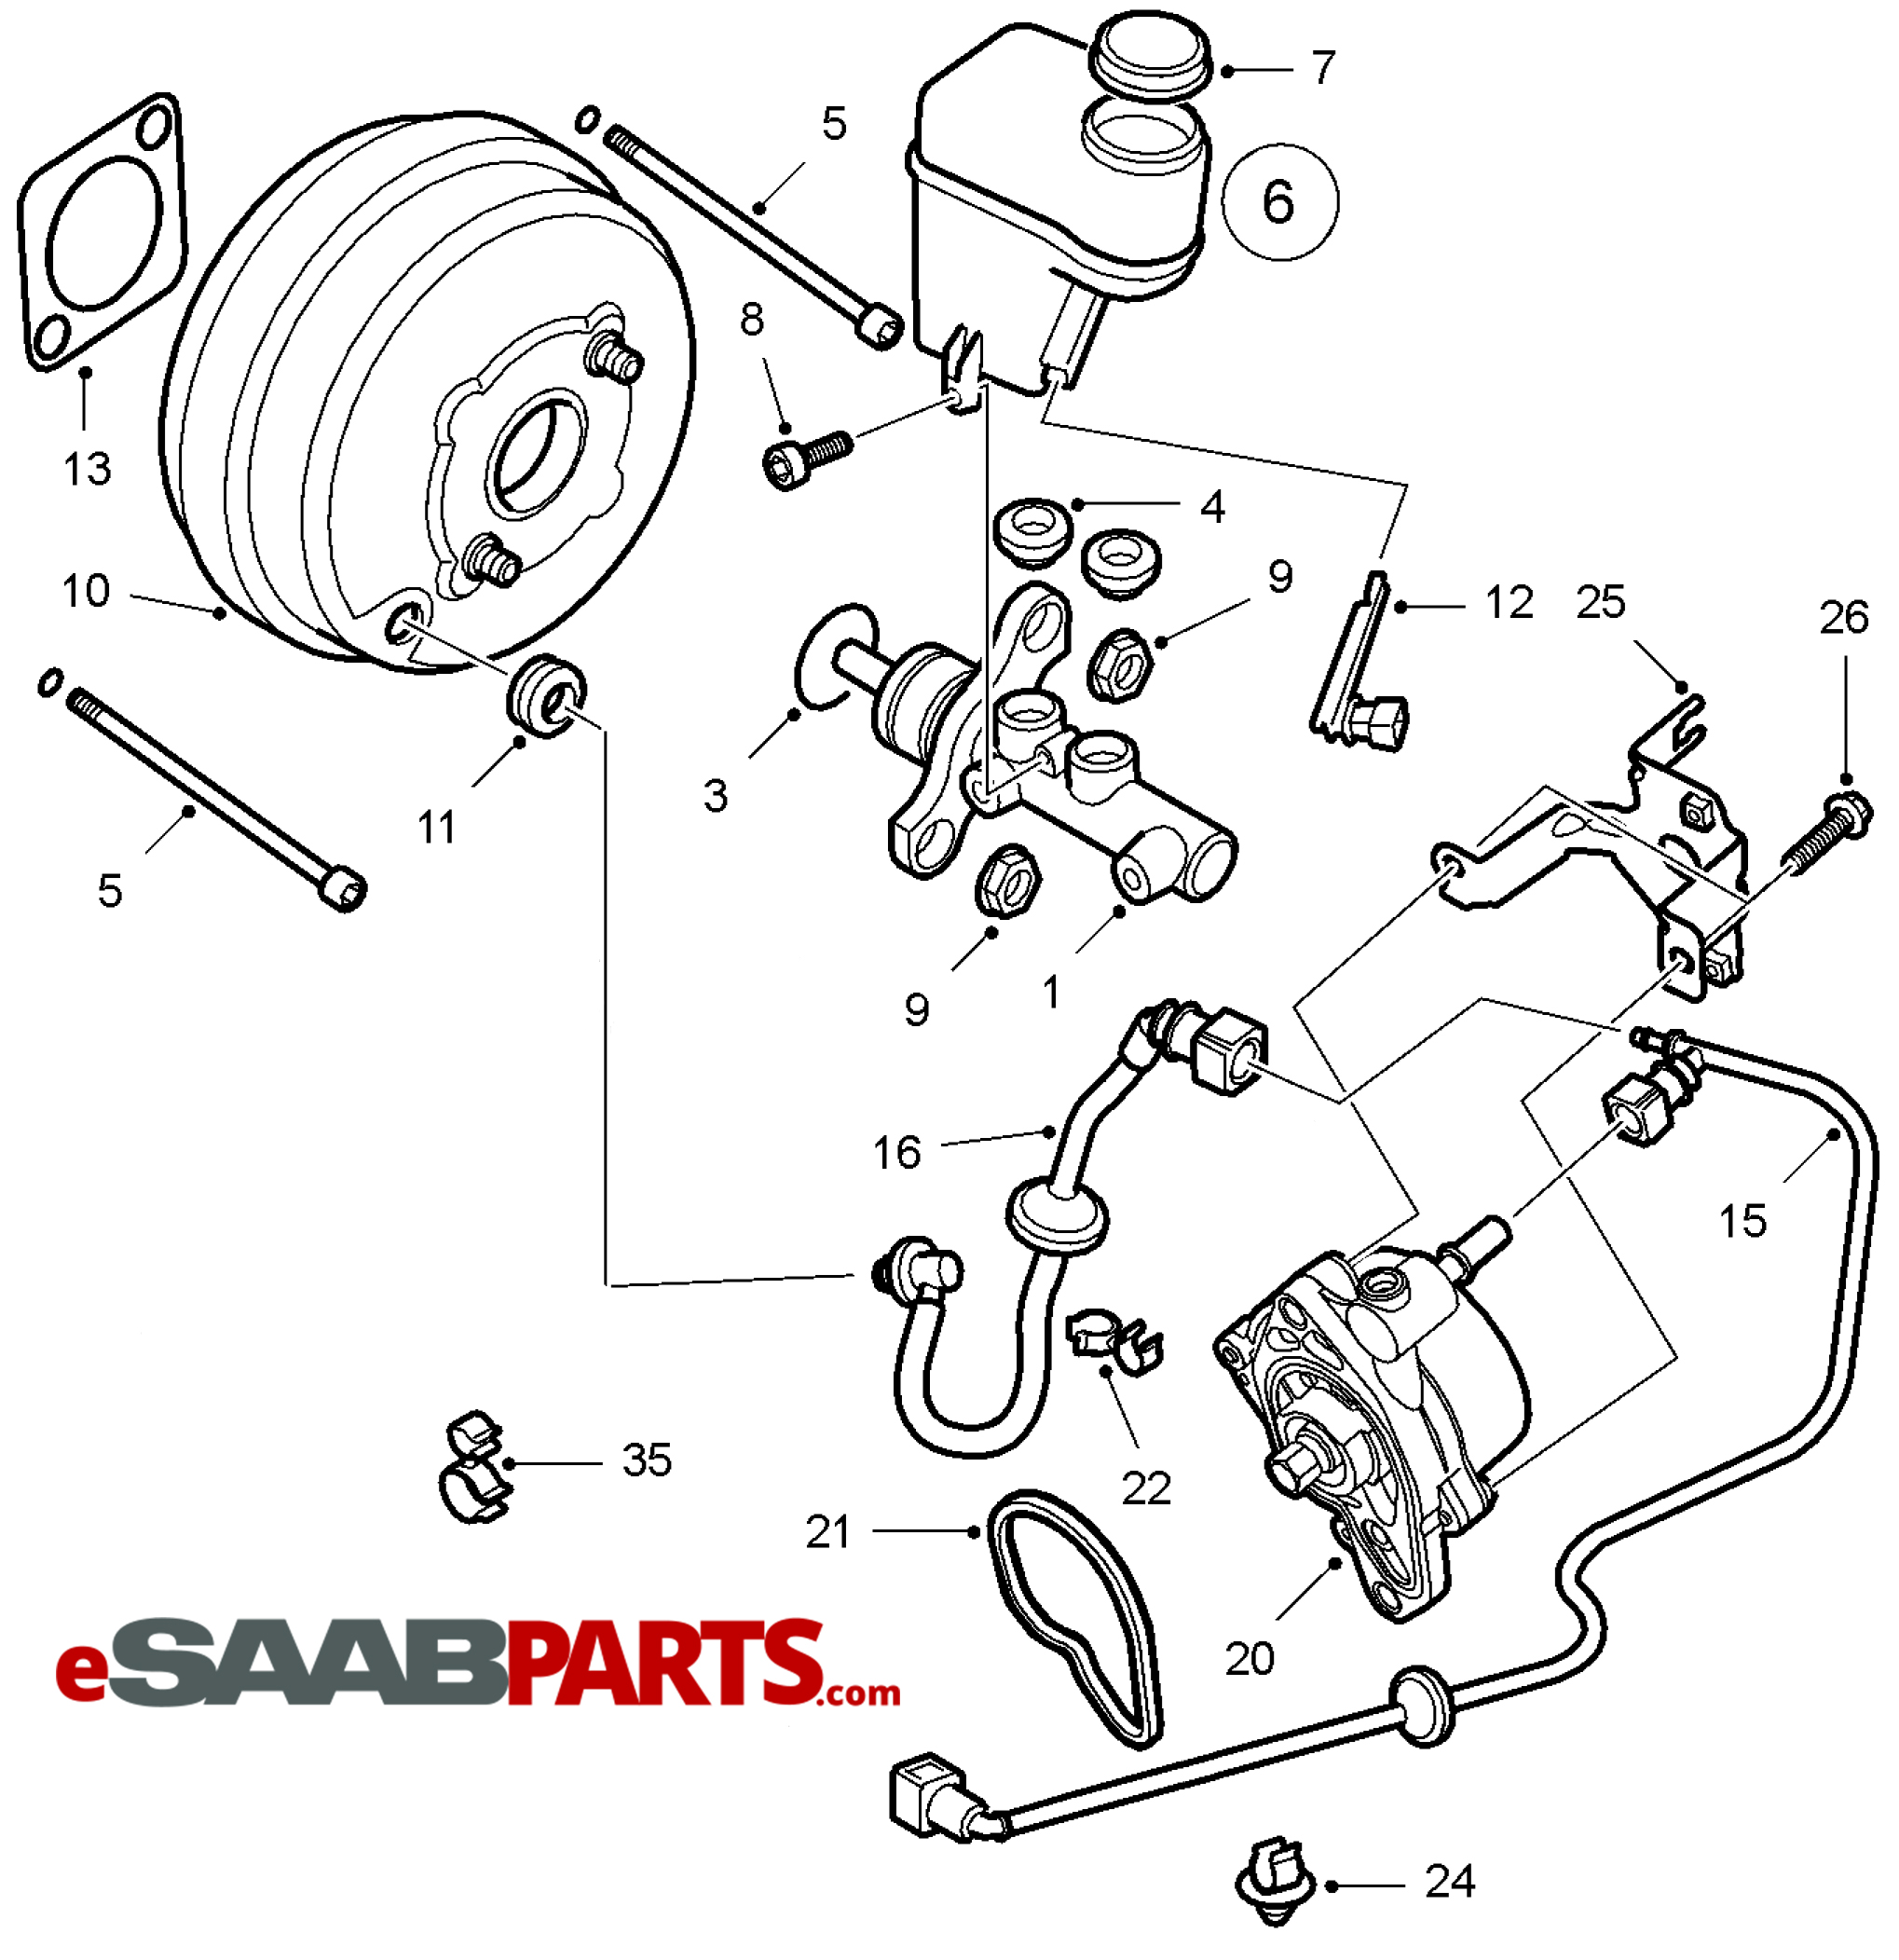 Audi Engine Diagram 2004 A4 1 8t